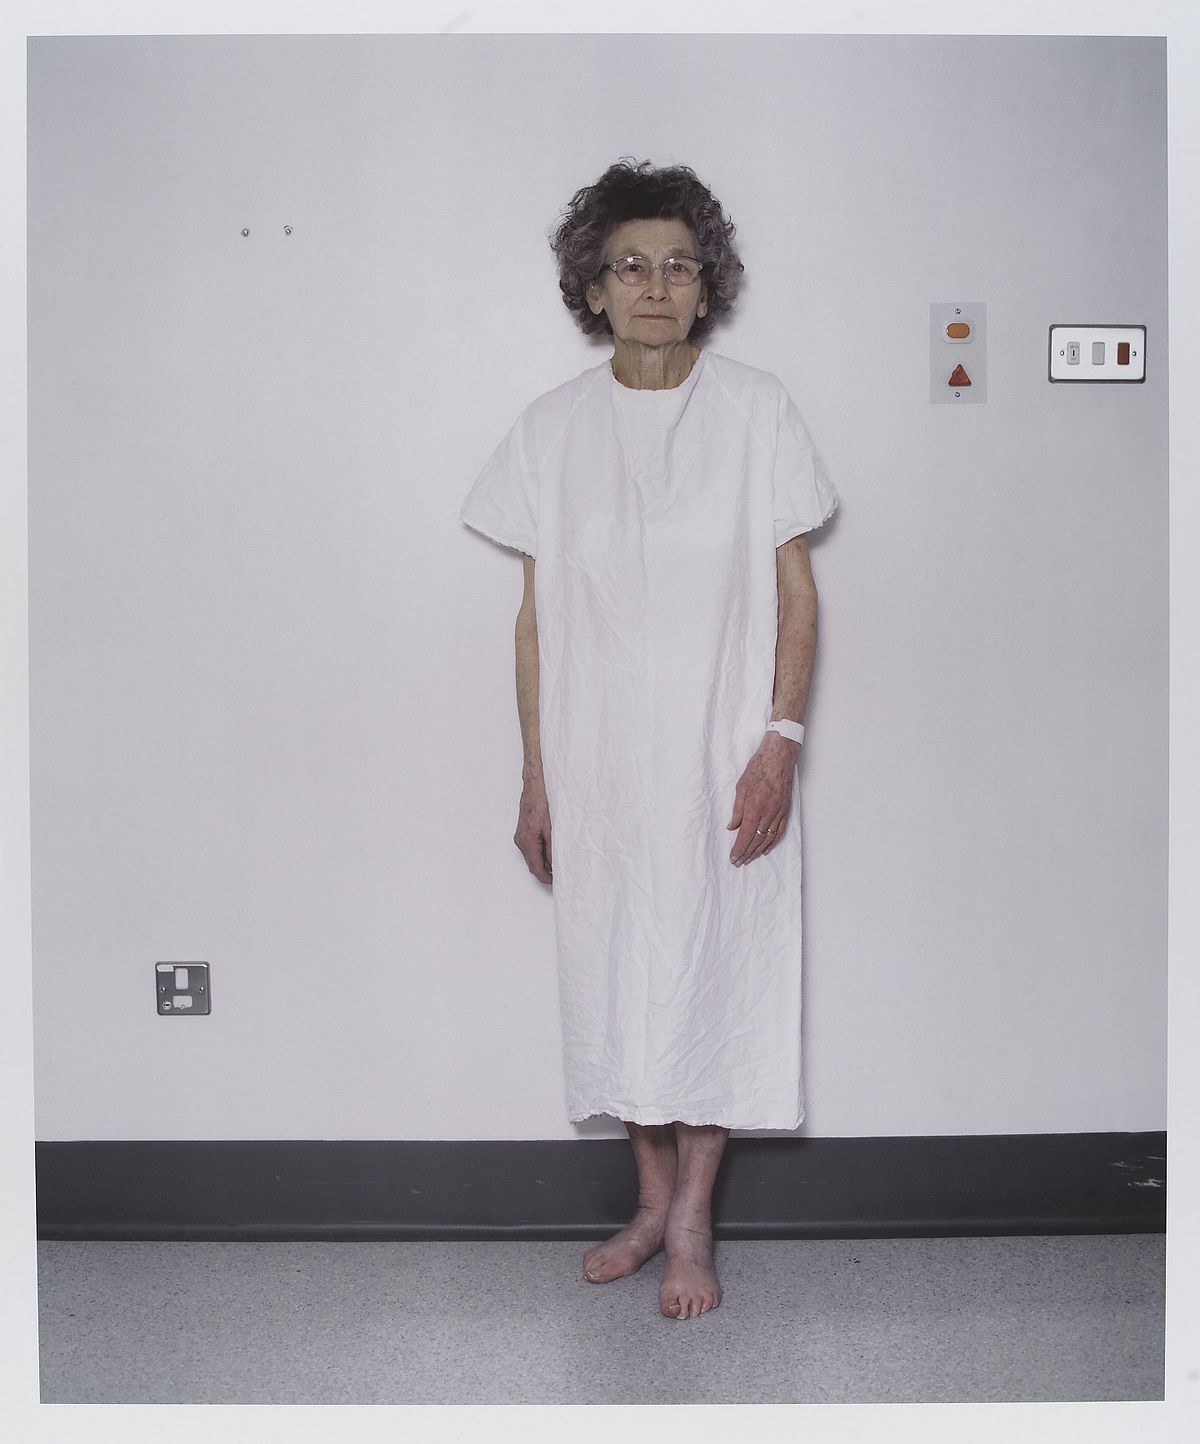 hospital gown - Wiktionary